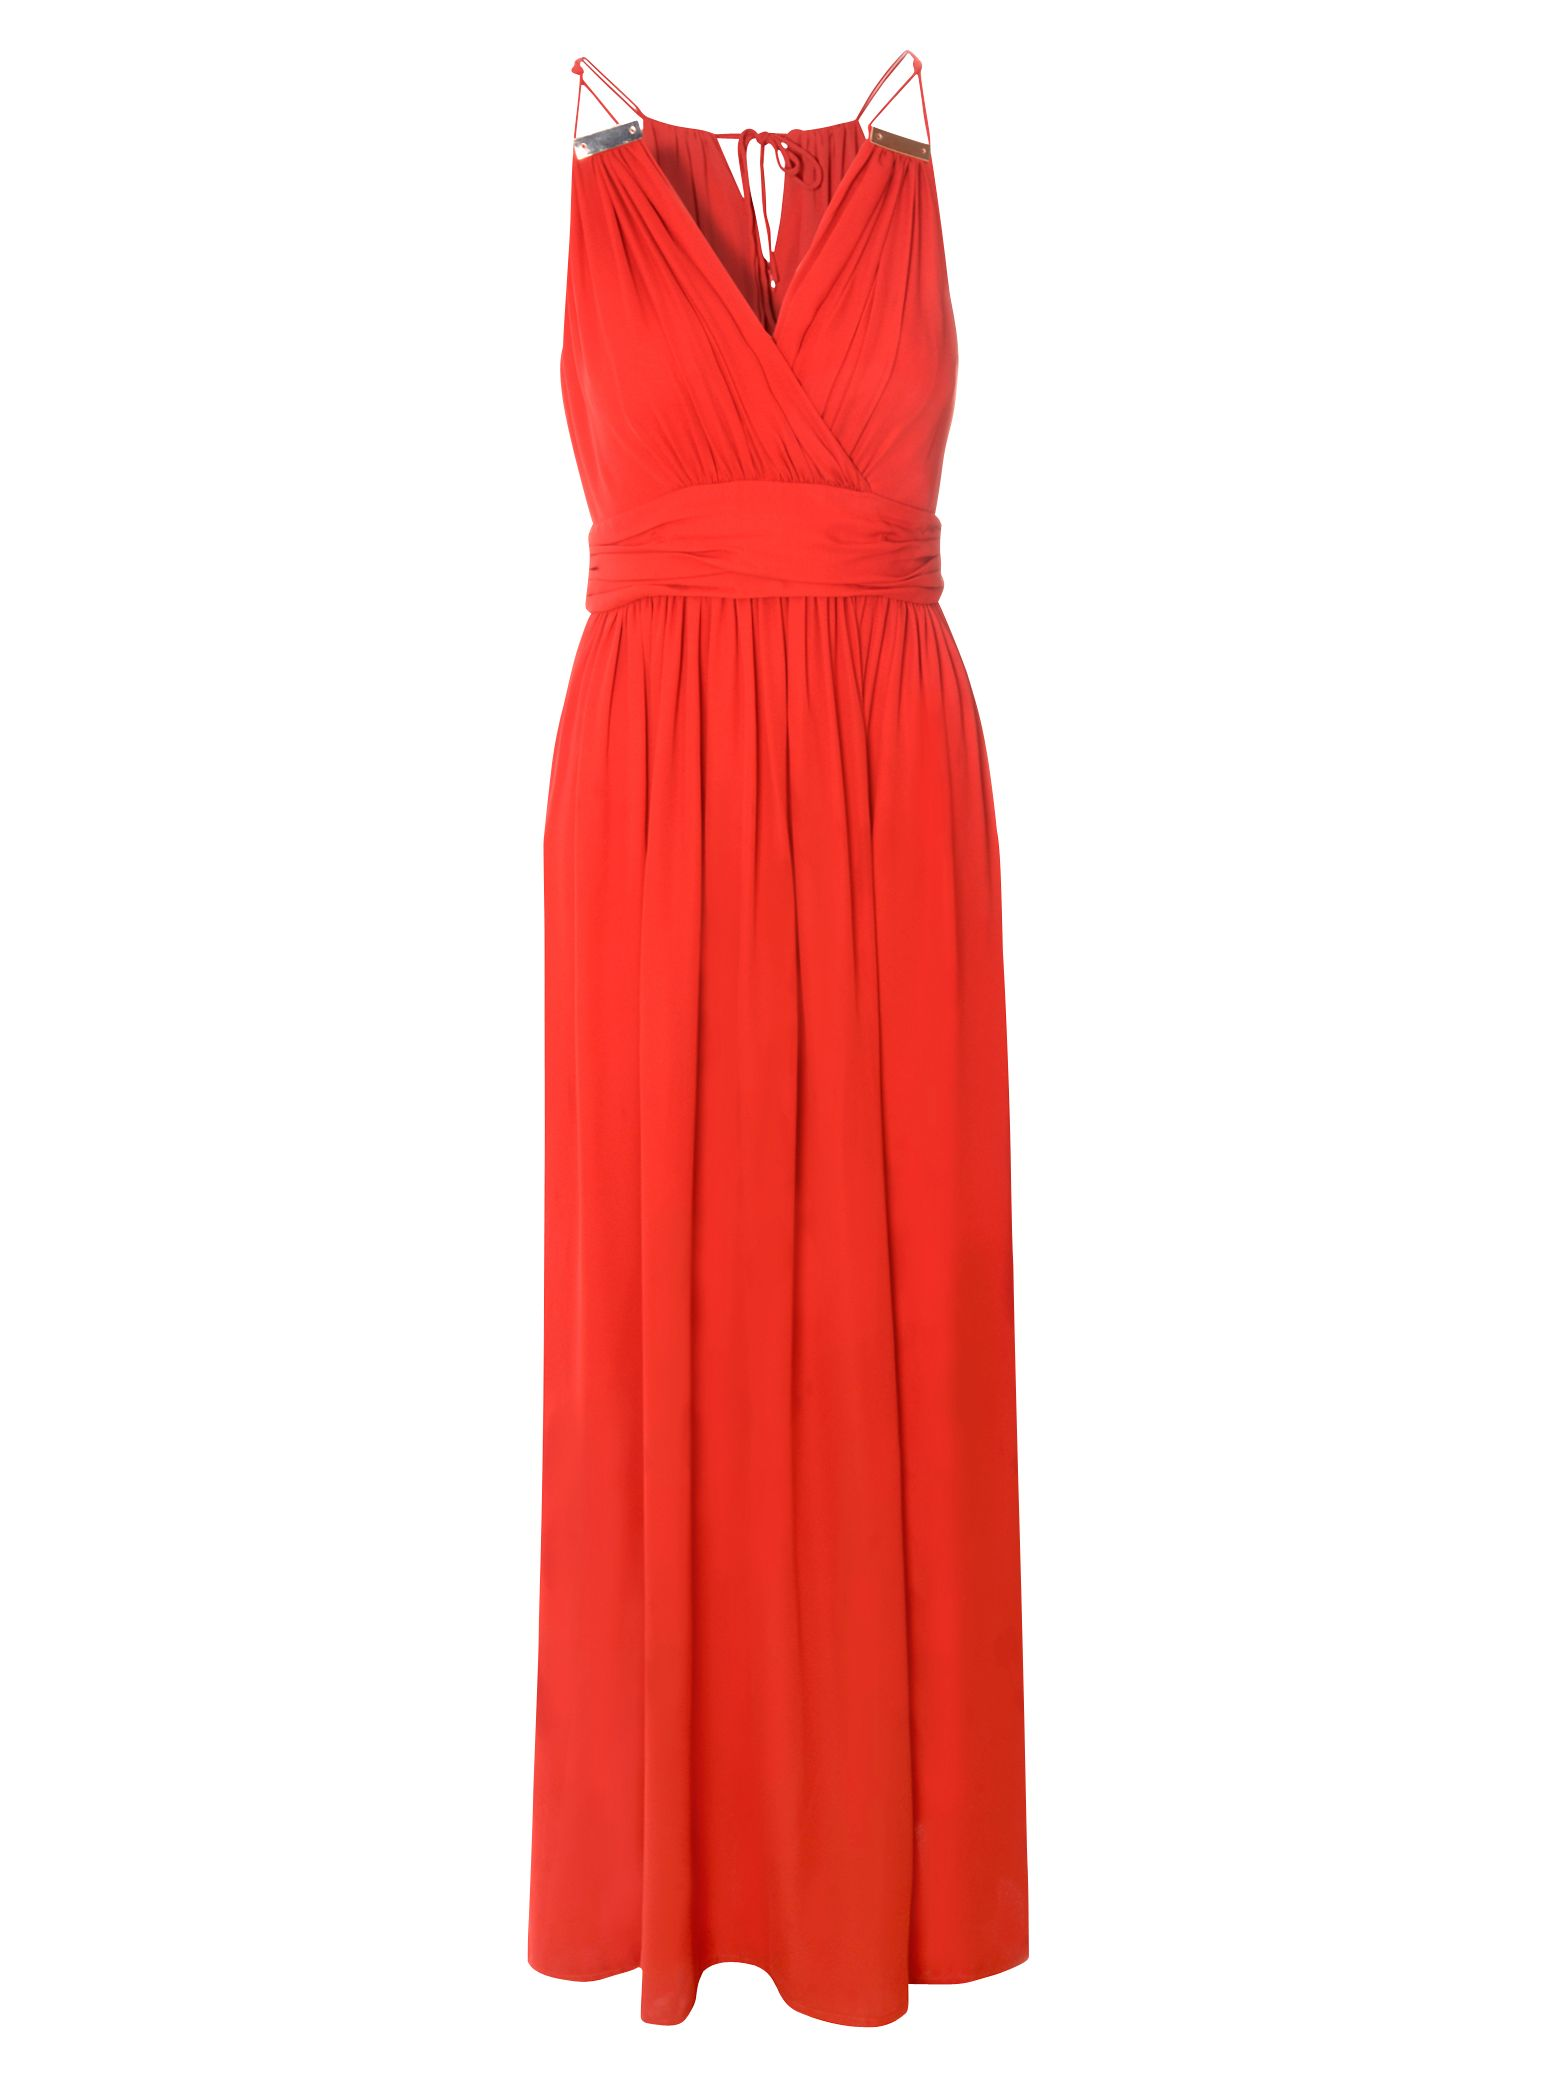 true decadence ruched halter neck maxi dress red, true, decadence, ruched, halter, neck, maxi, dress, red, true decadence, 8|18|12|14|10|16, women, womens dresses, gifts, valentines day, red dress, 1783255